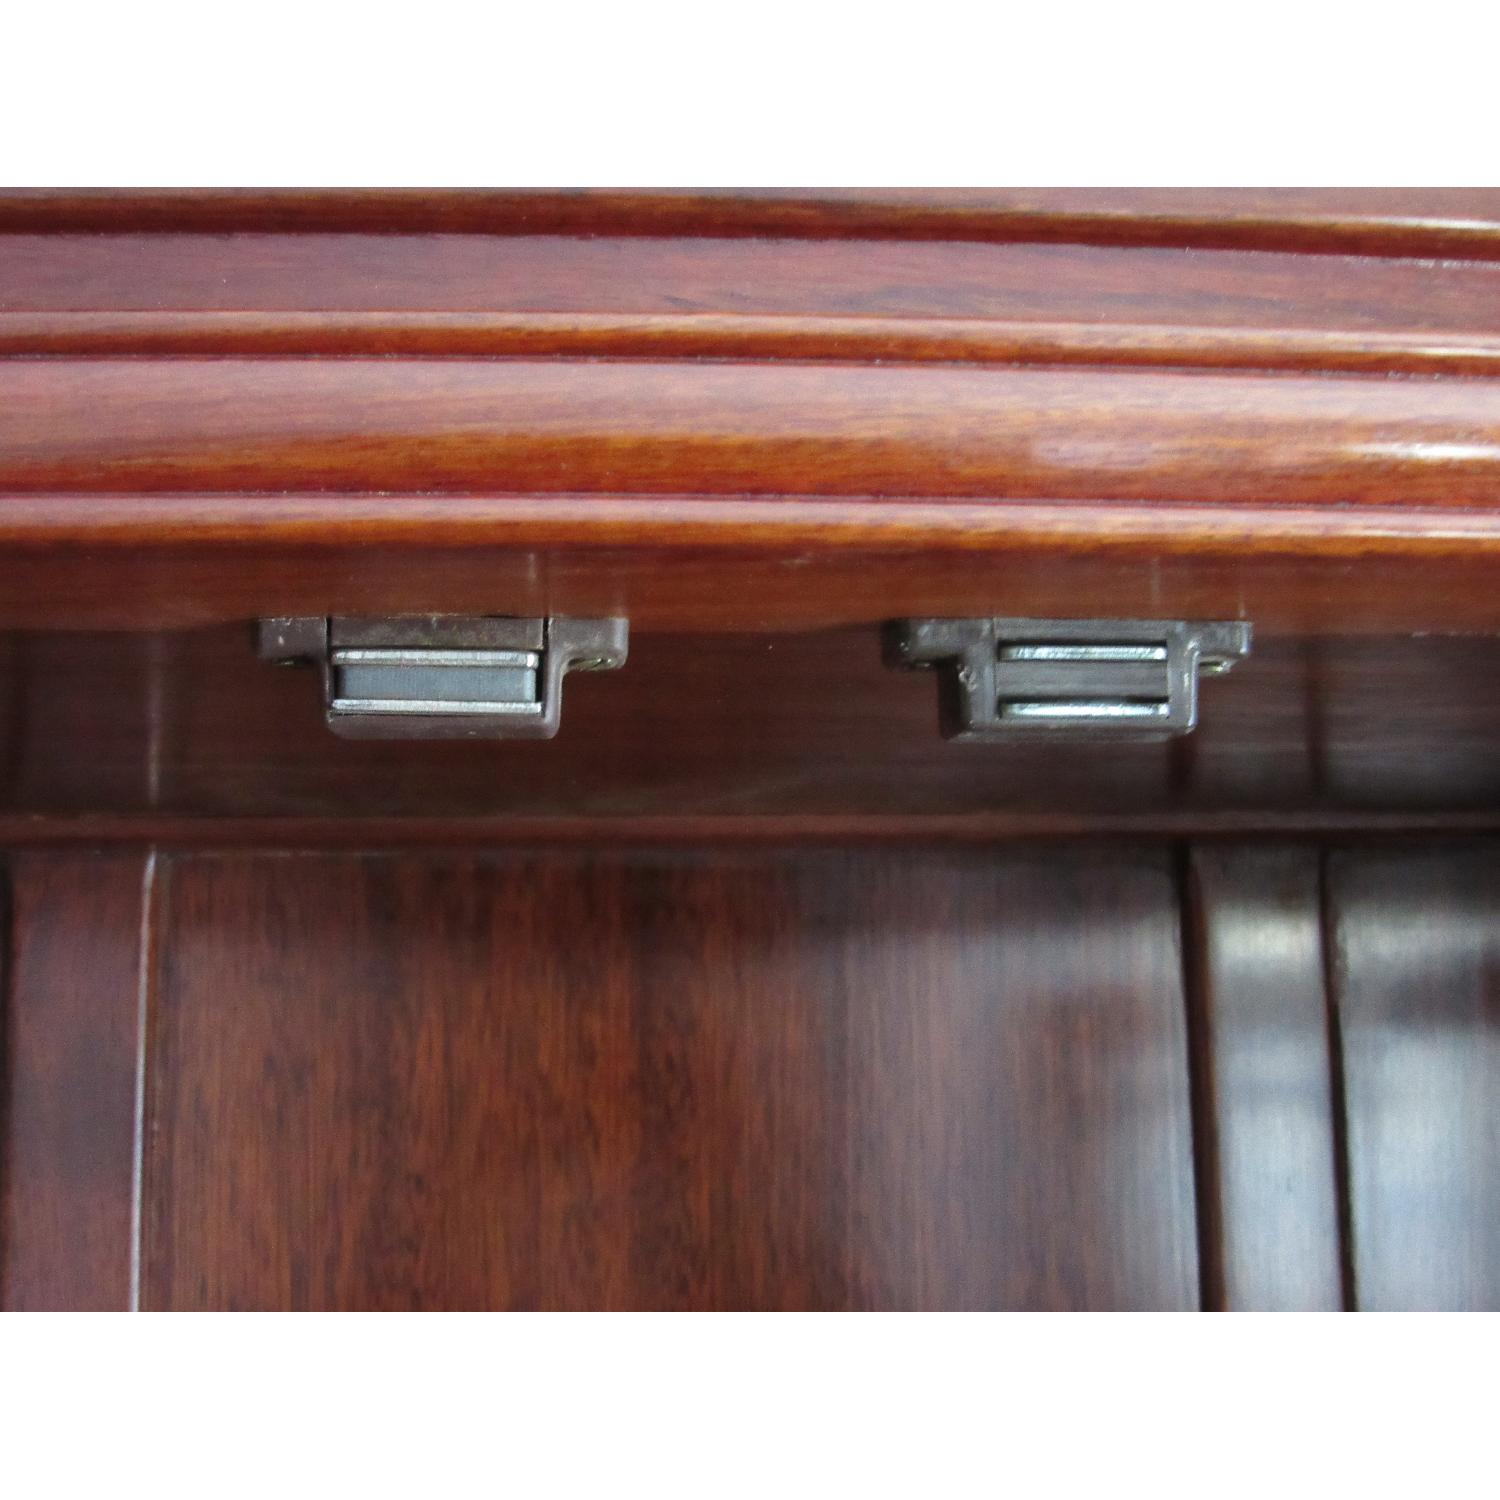 Rosewood Elm Glass Door Cabinets - 2 Available - image-7